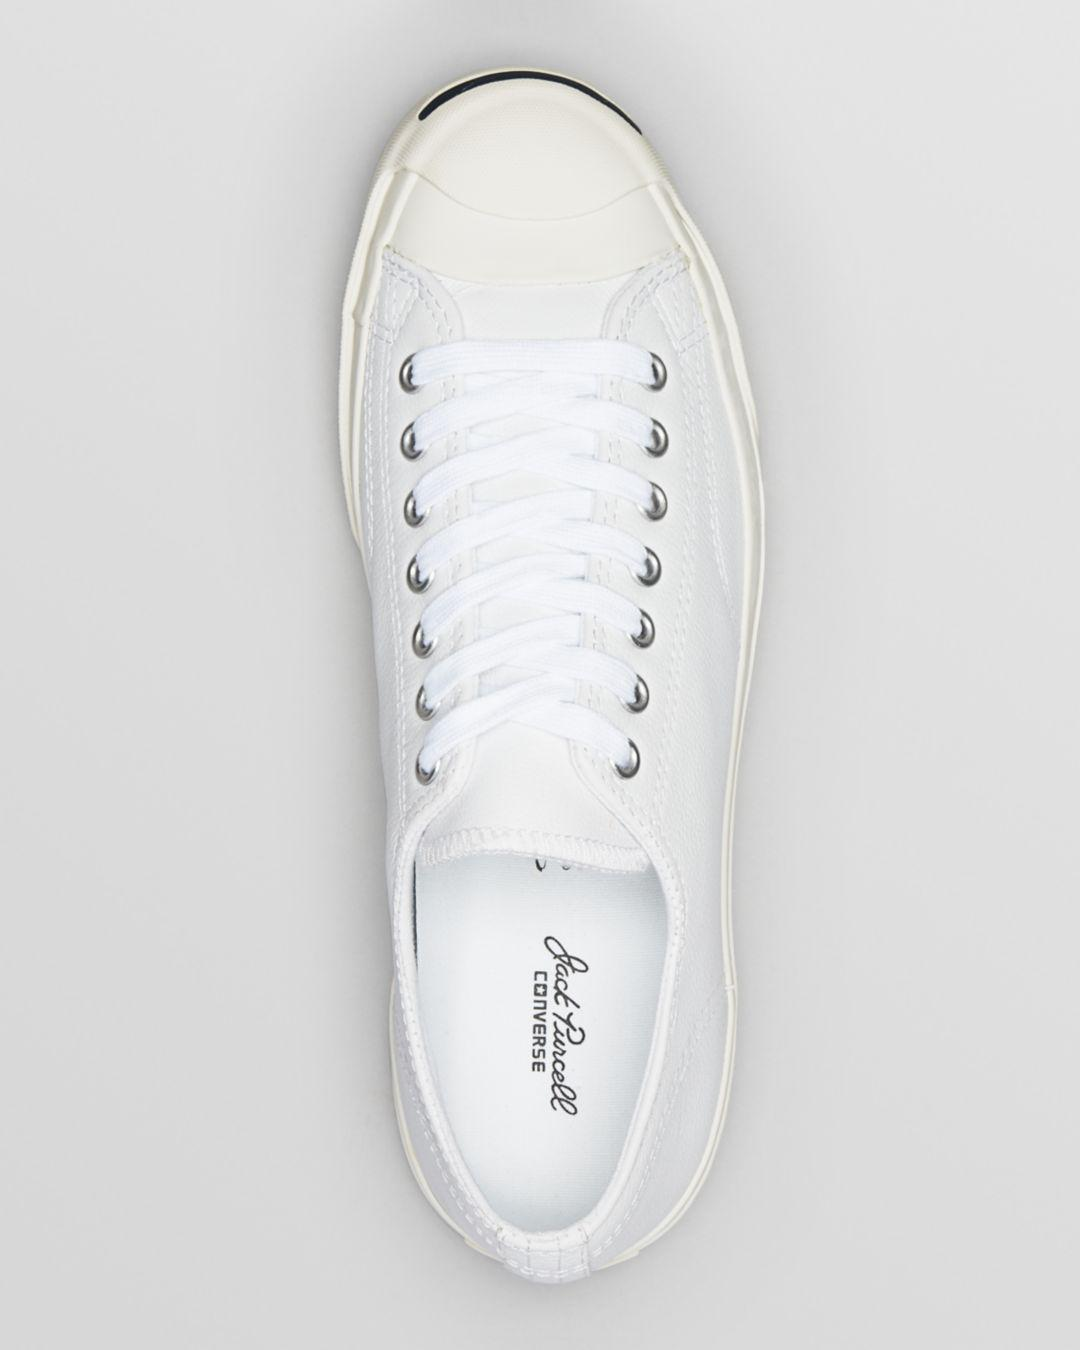 9ec5a7262fc Lyst - Converse Men s Jack Purcell Leather Lace Up Sneakers in White for Men